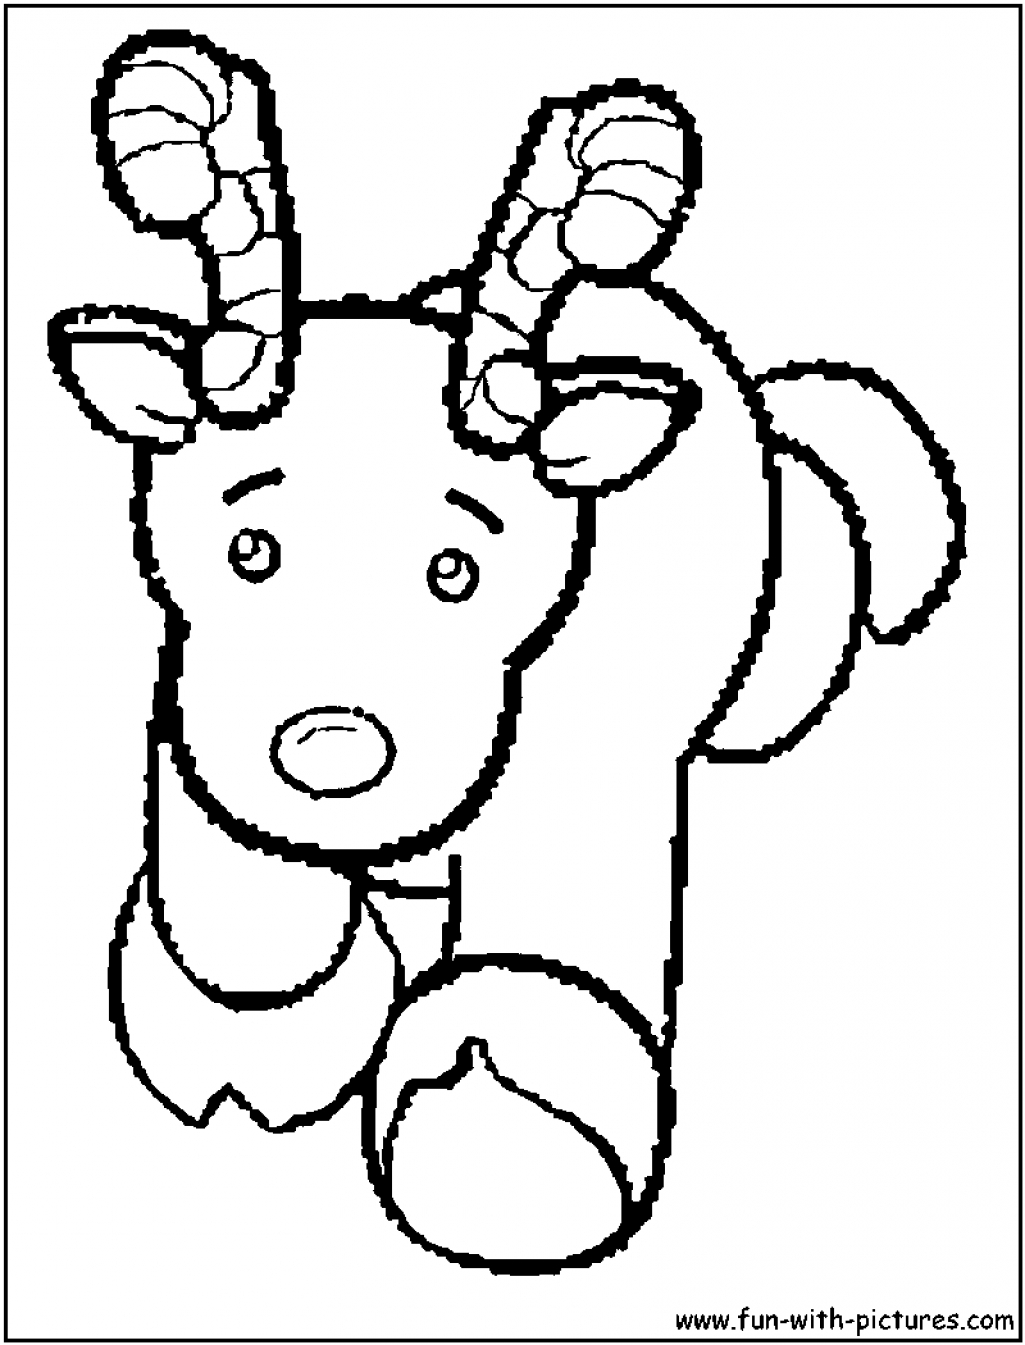 webkinz coloring pages free - photo#9